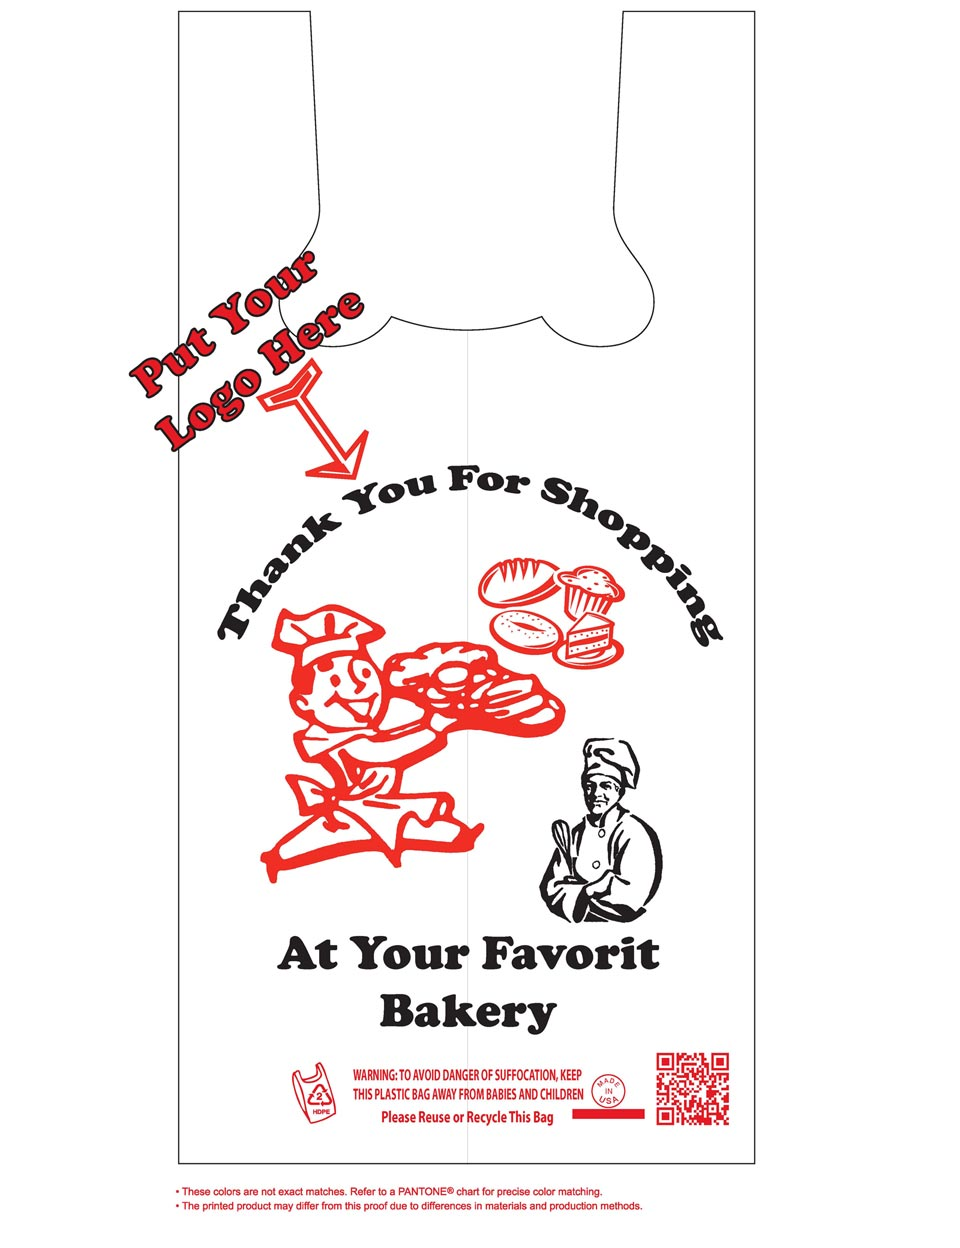 Plastic bag for you - You Can Rely On Ans Plastics For Your Quality Bakery Bags